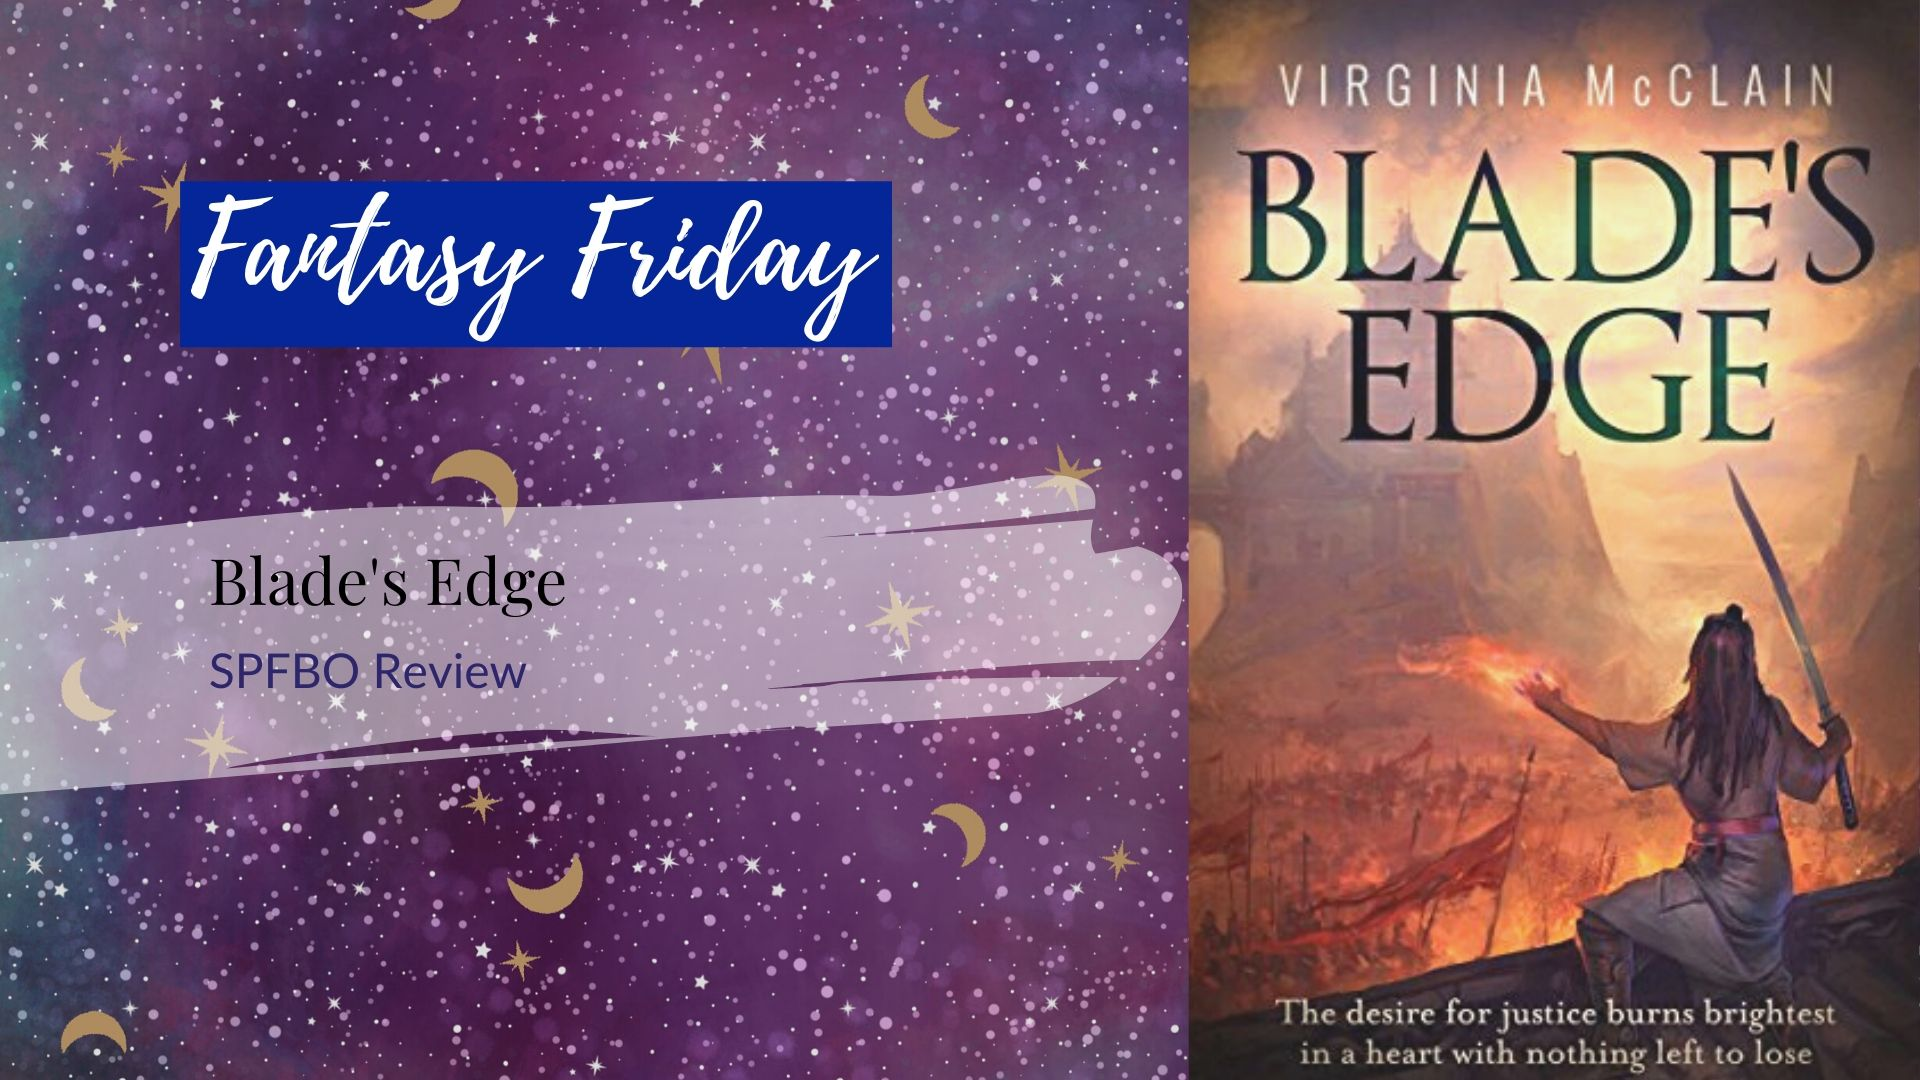 #SPFBO Review: Blade's Edge by Virginia McClain